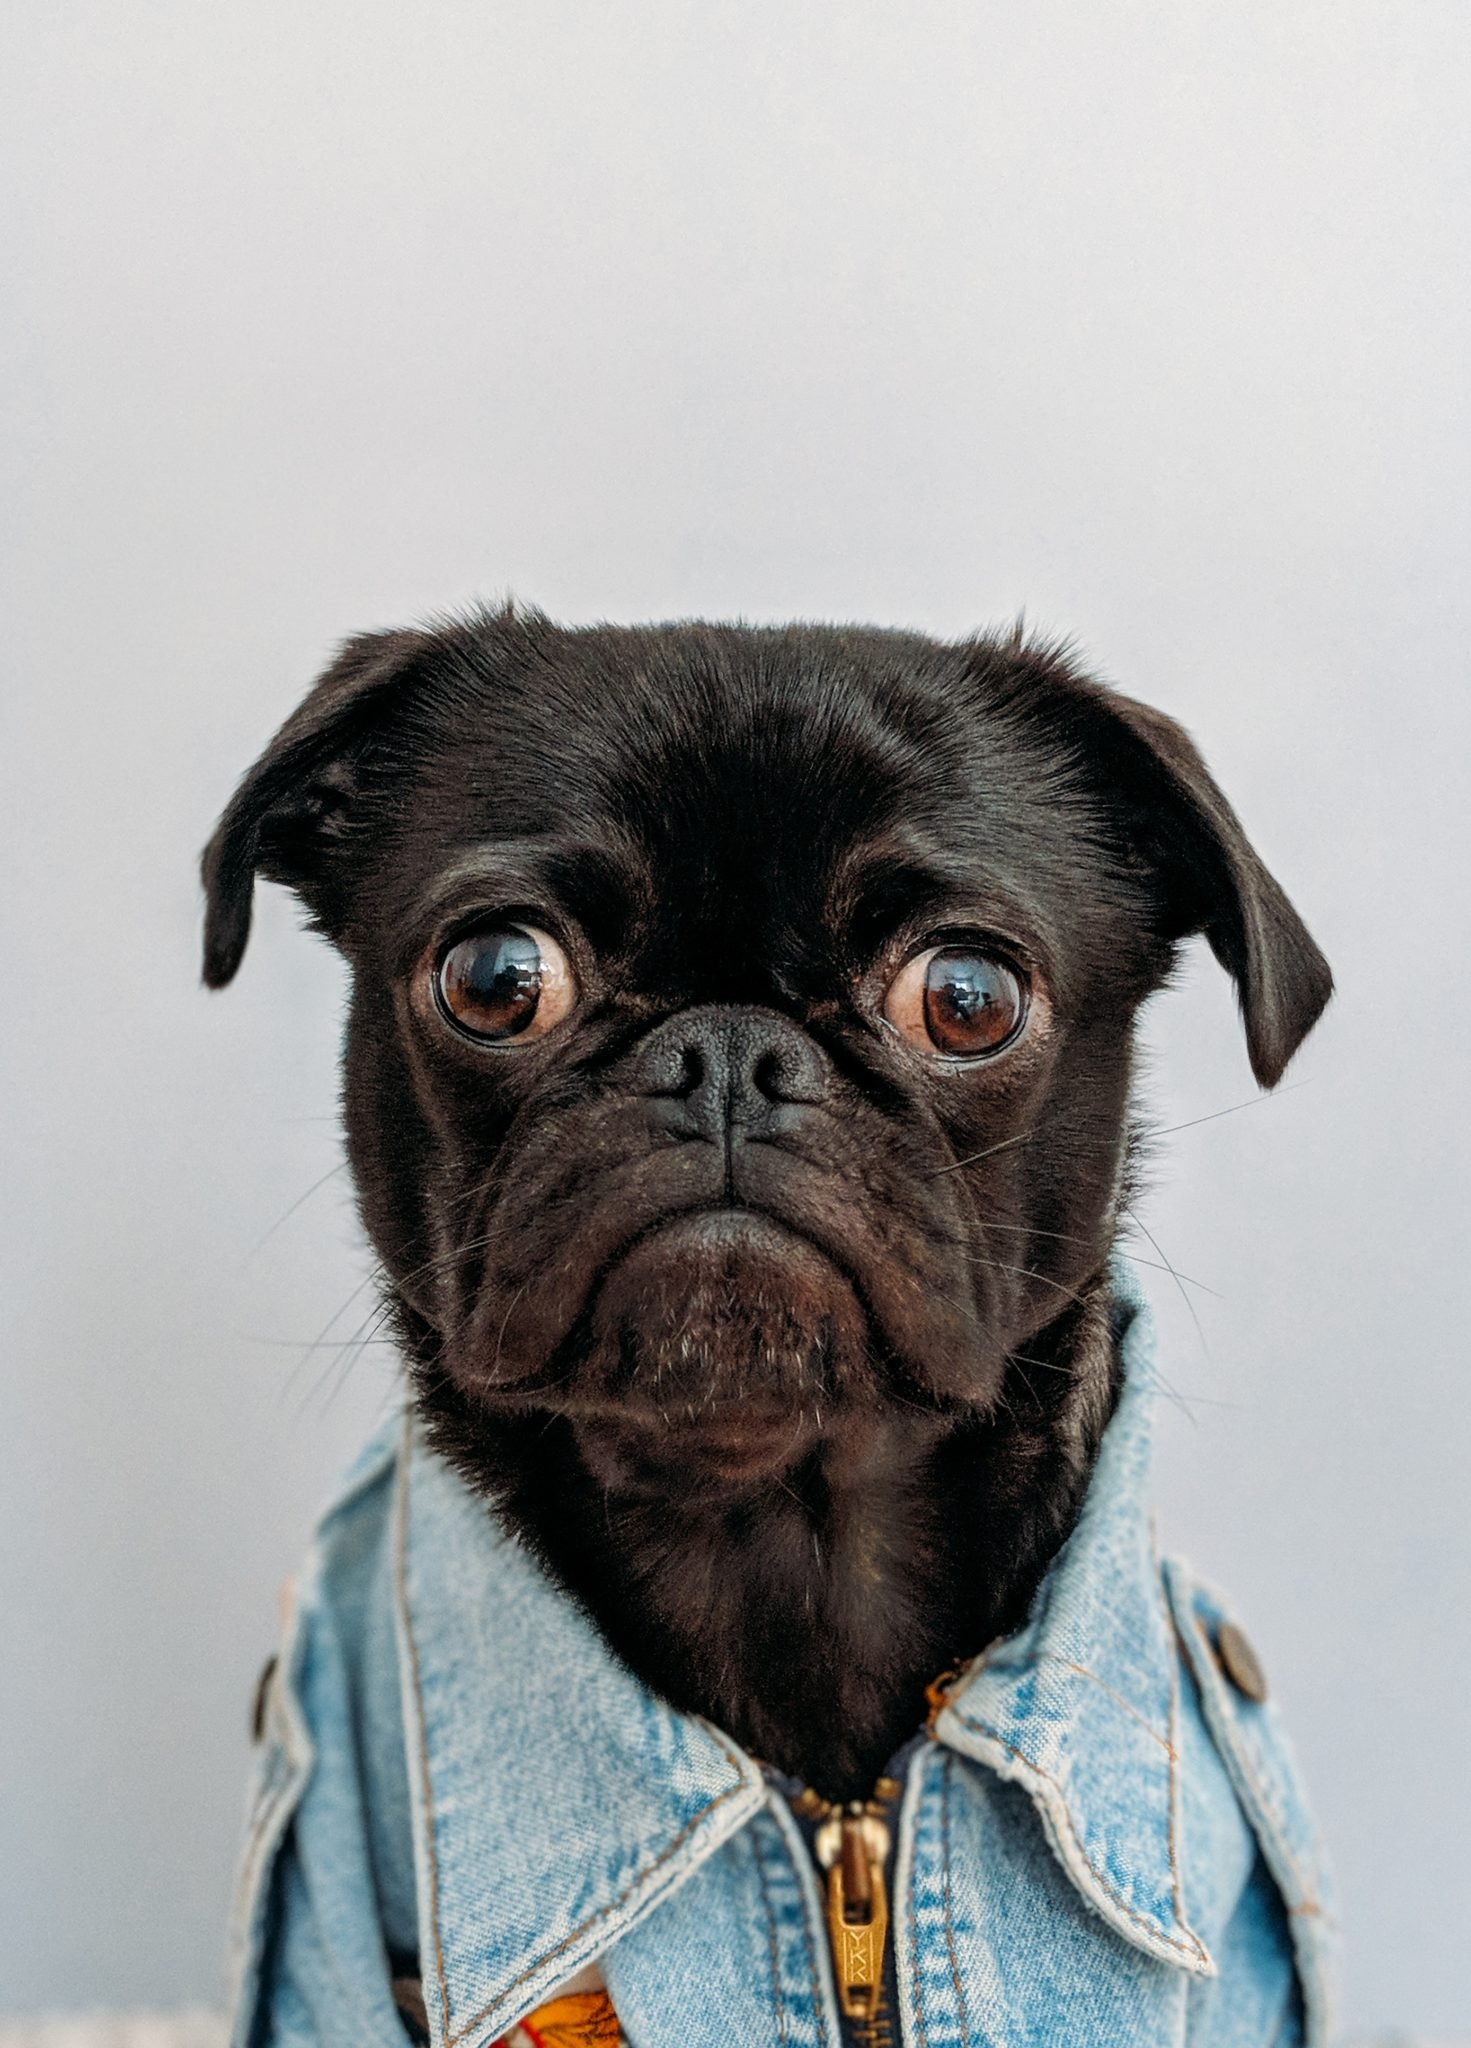 Dog wearing denim jacket